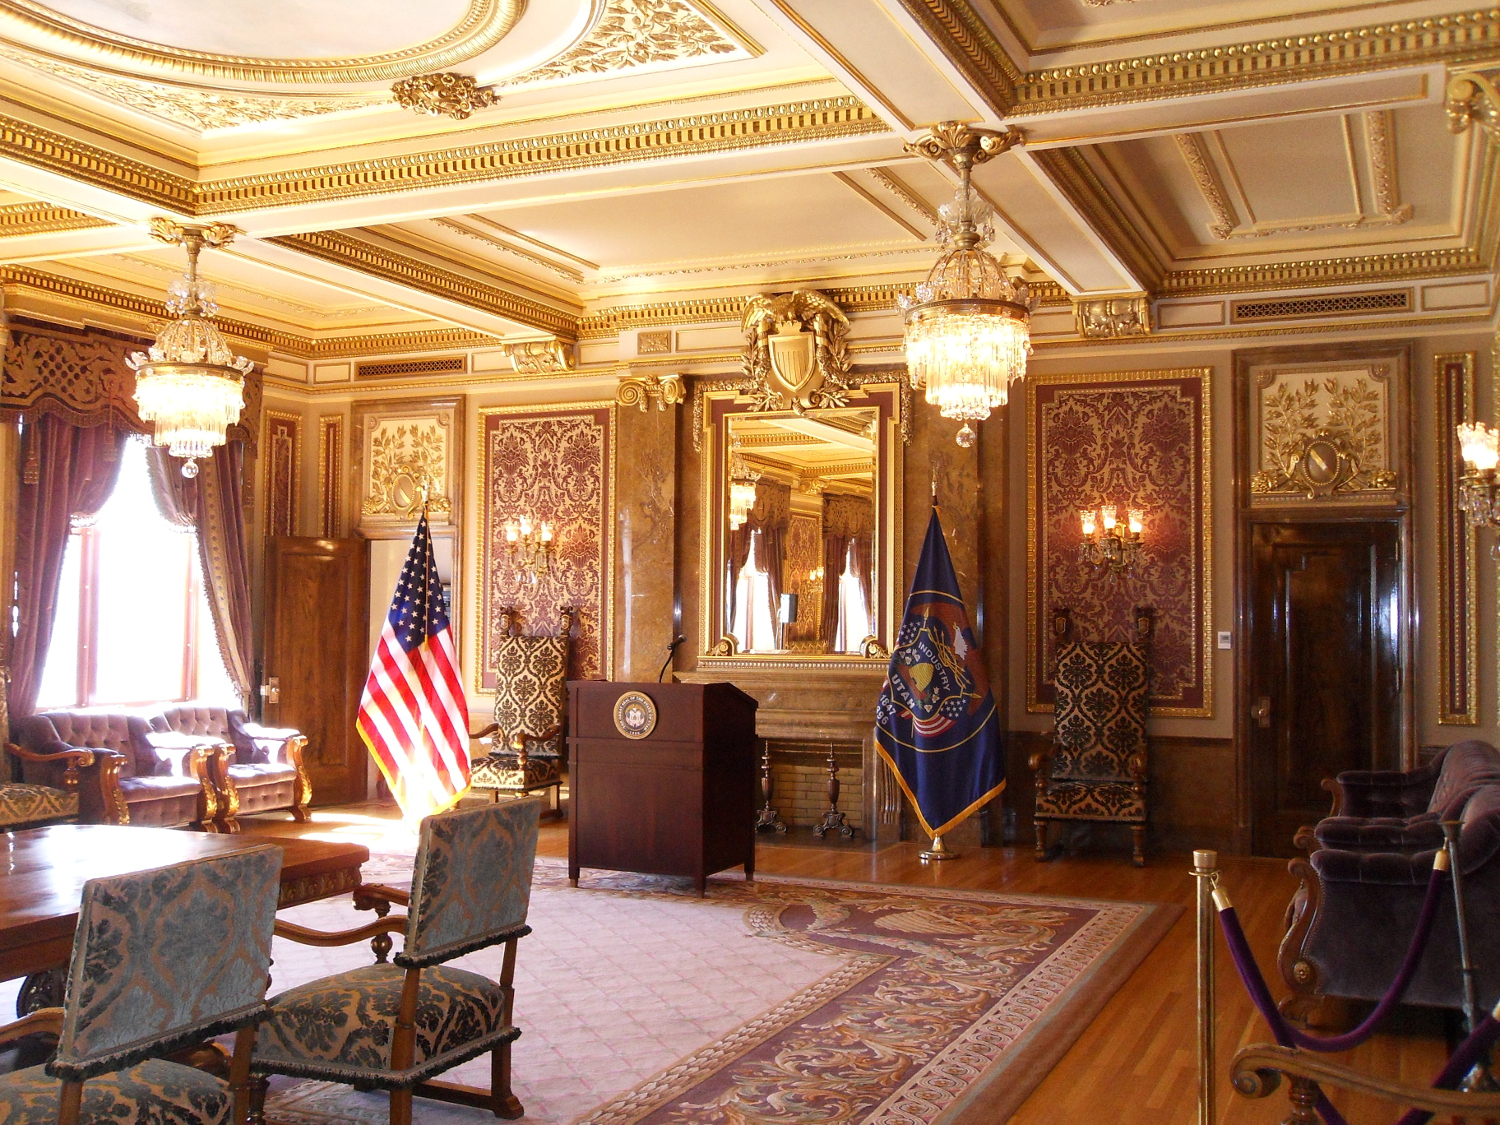 File:Gold Room in the Utah State Capitol.jpg - Wikimedia Commons